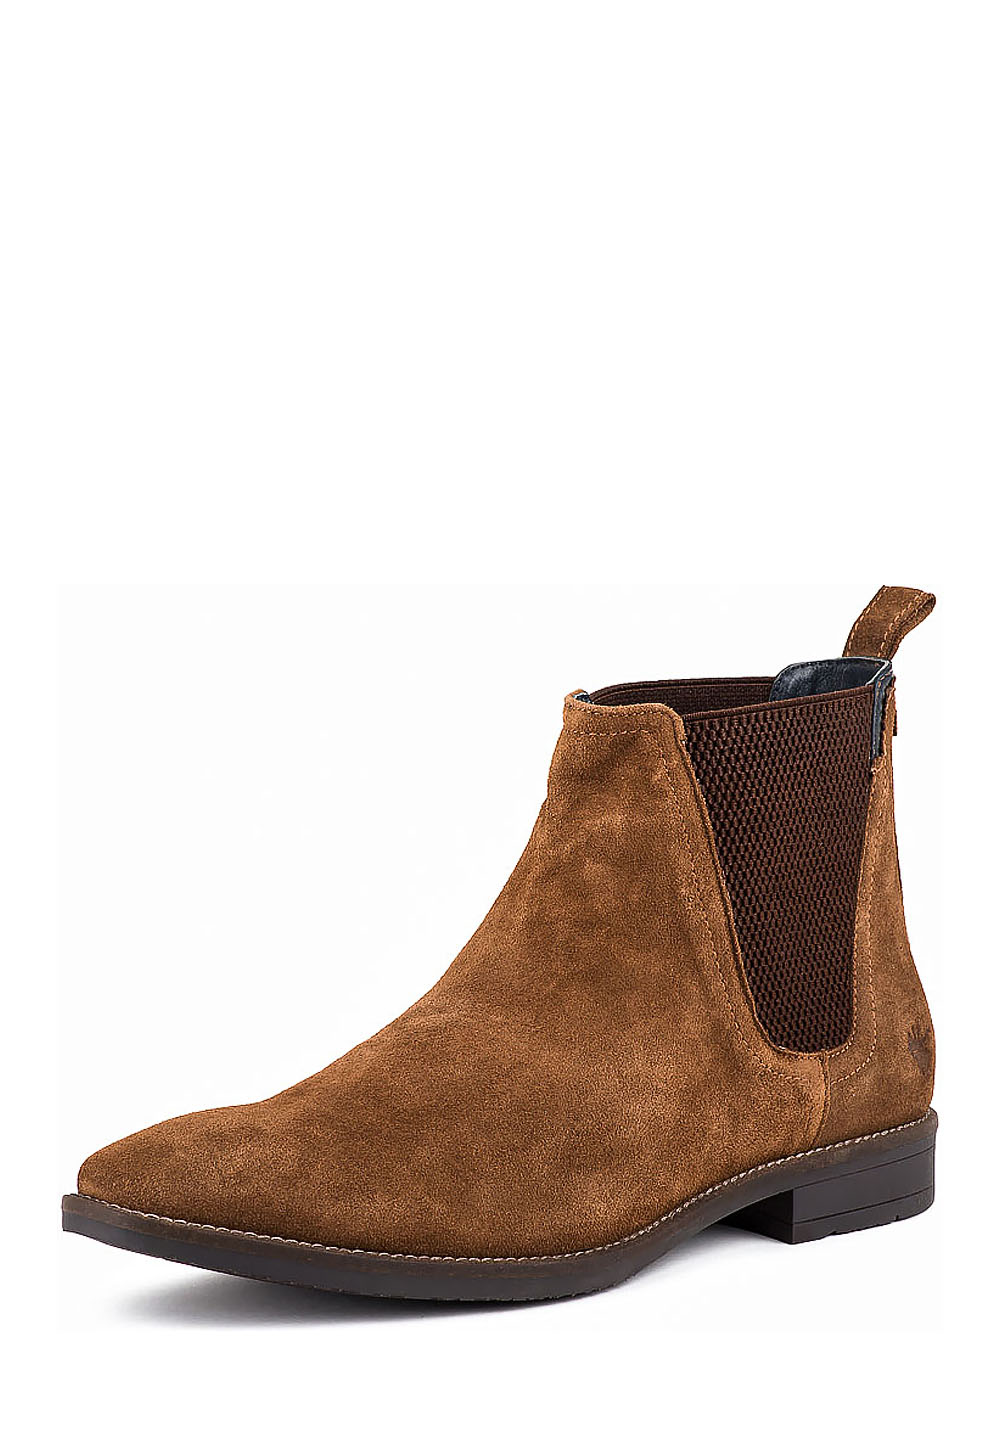 Goodwin Smith Chelsea-Boots Finchley, Leder, brau braun   Schuhe > Boots > Chelsea-Boots   Braun   Goodwin Smith